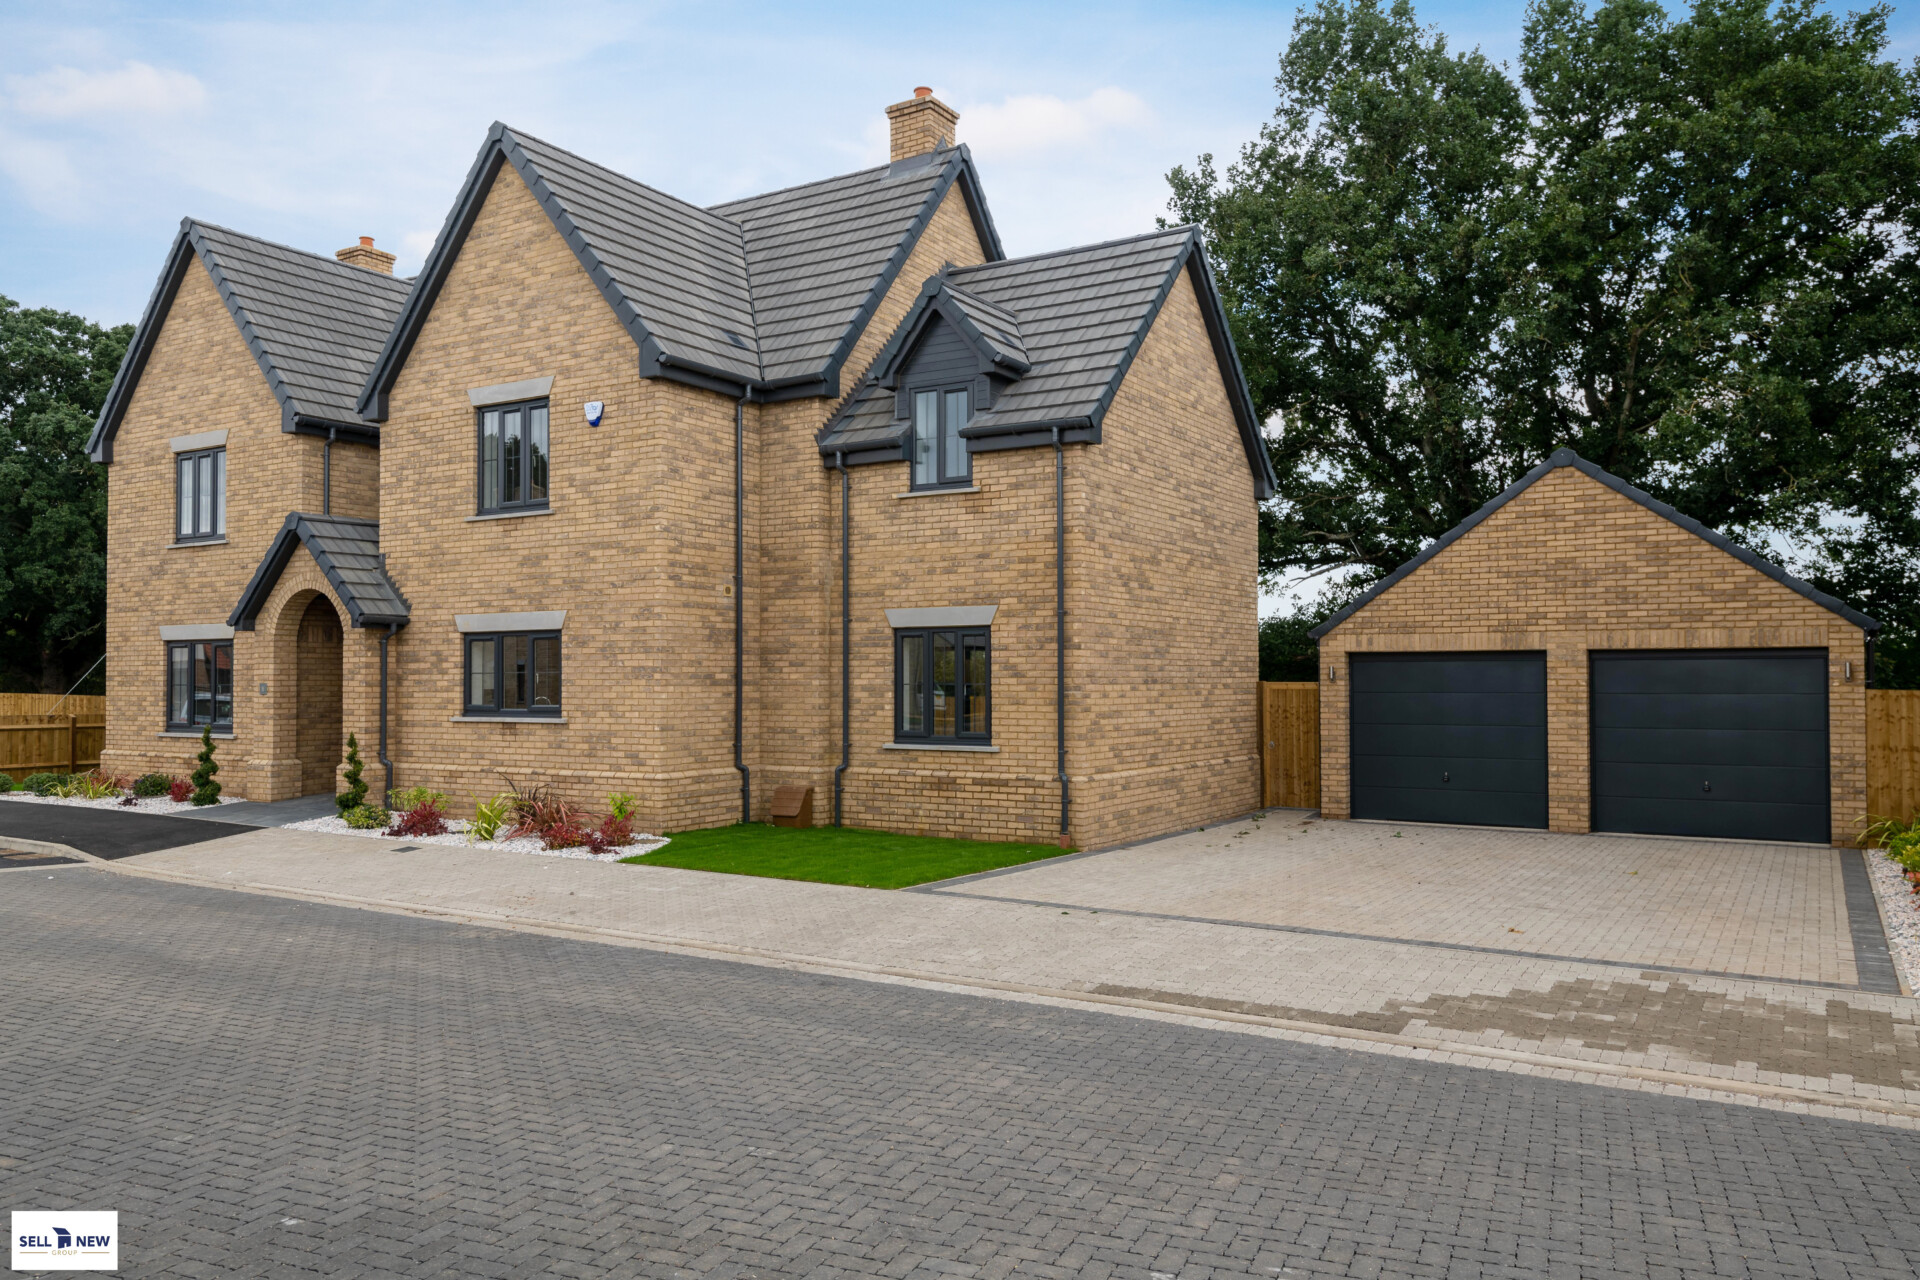 Plot 9 Hayfield close, Flitton MK45 5DR – Stunning 6/7 bedroom detached family home